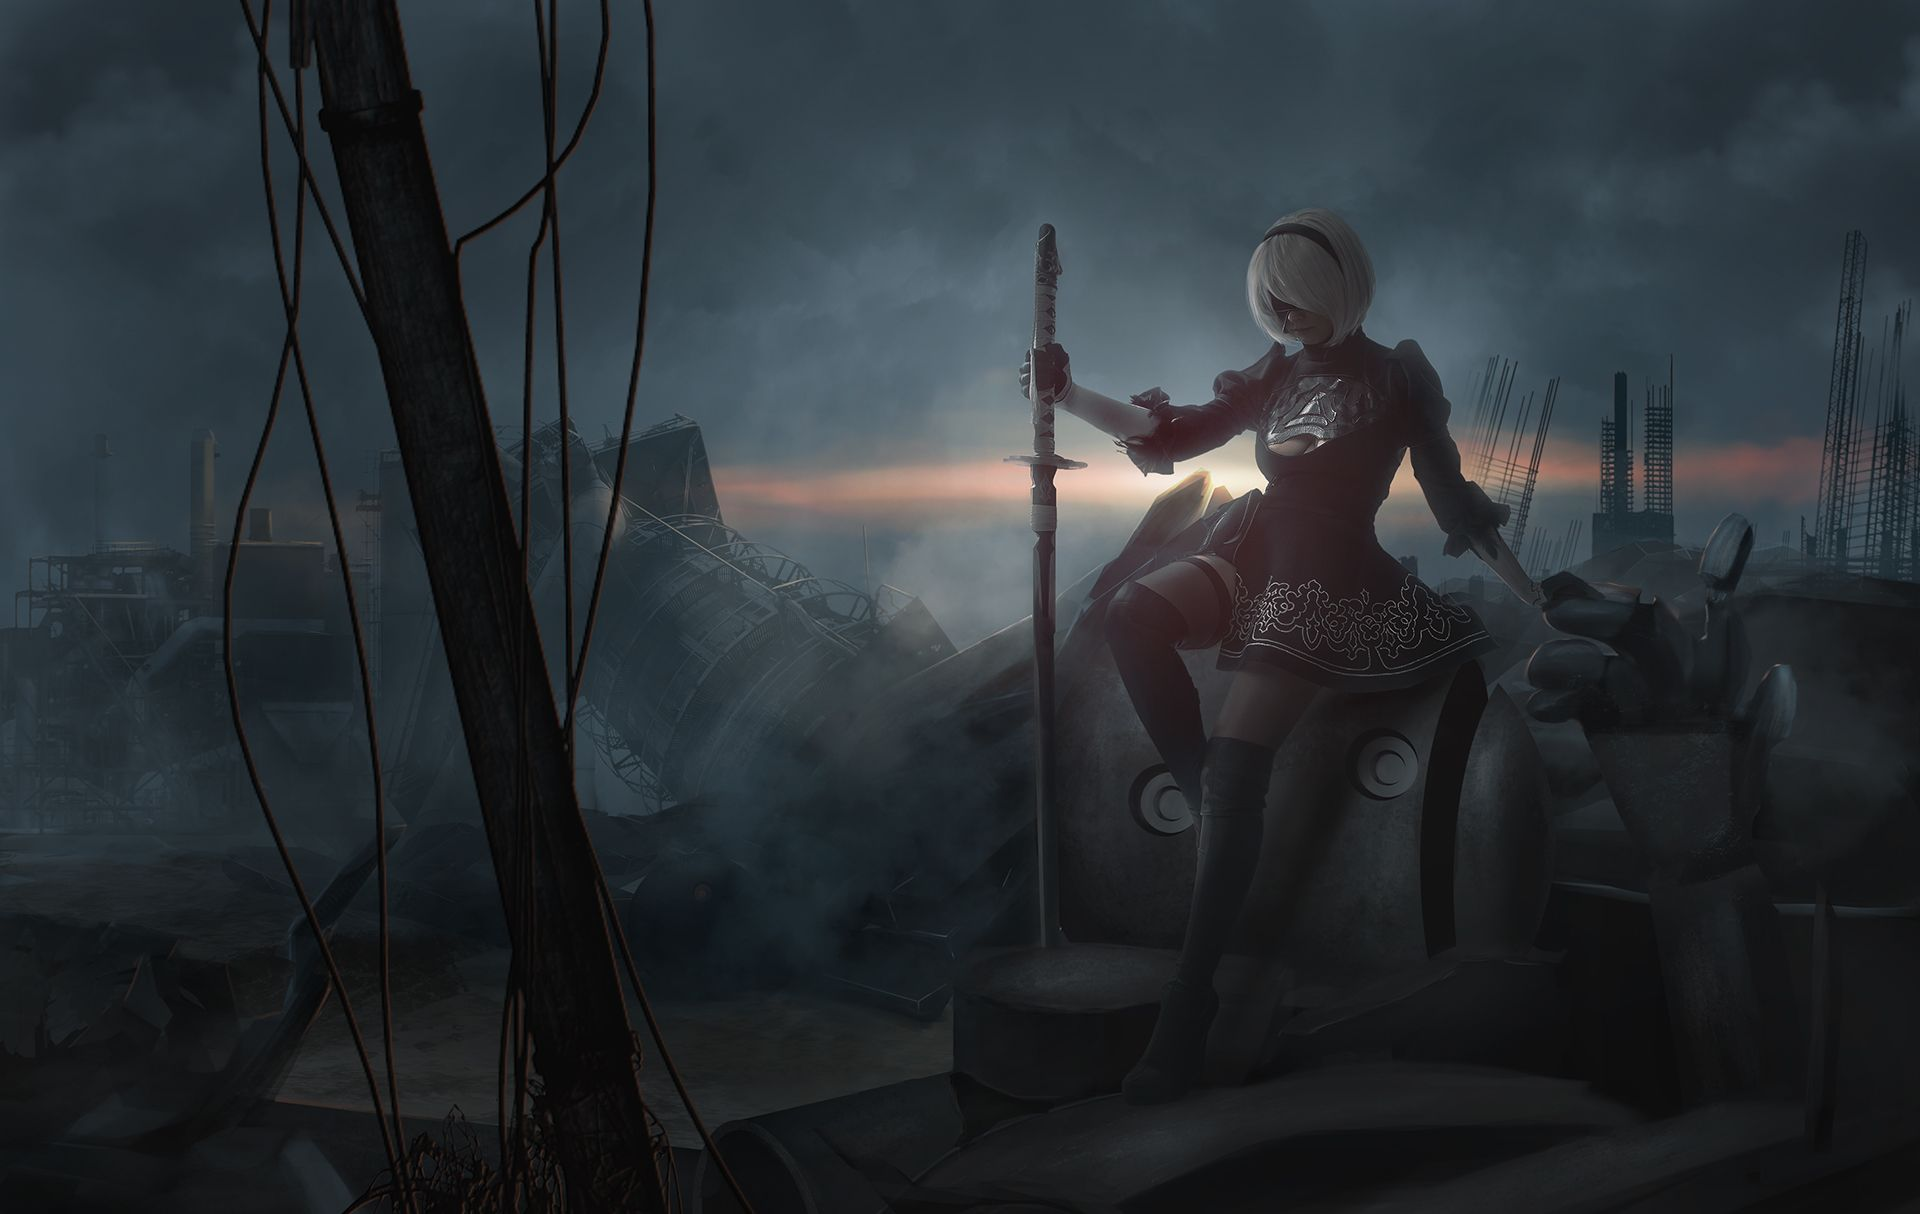 Nier Automata HD, HD Games, 4k Wallpapers, Image, Backgrounds